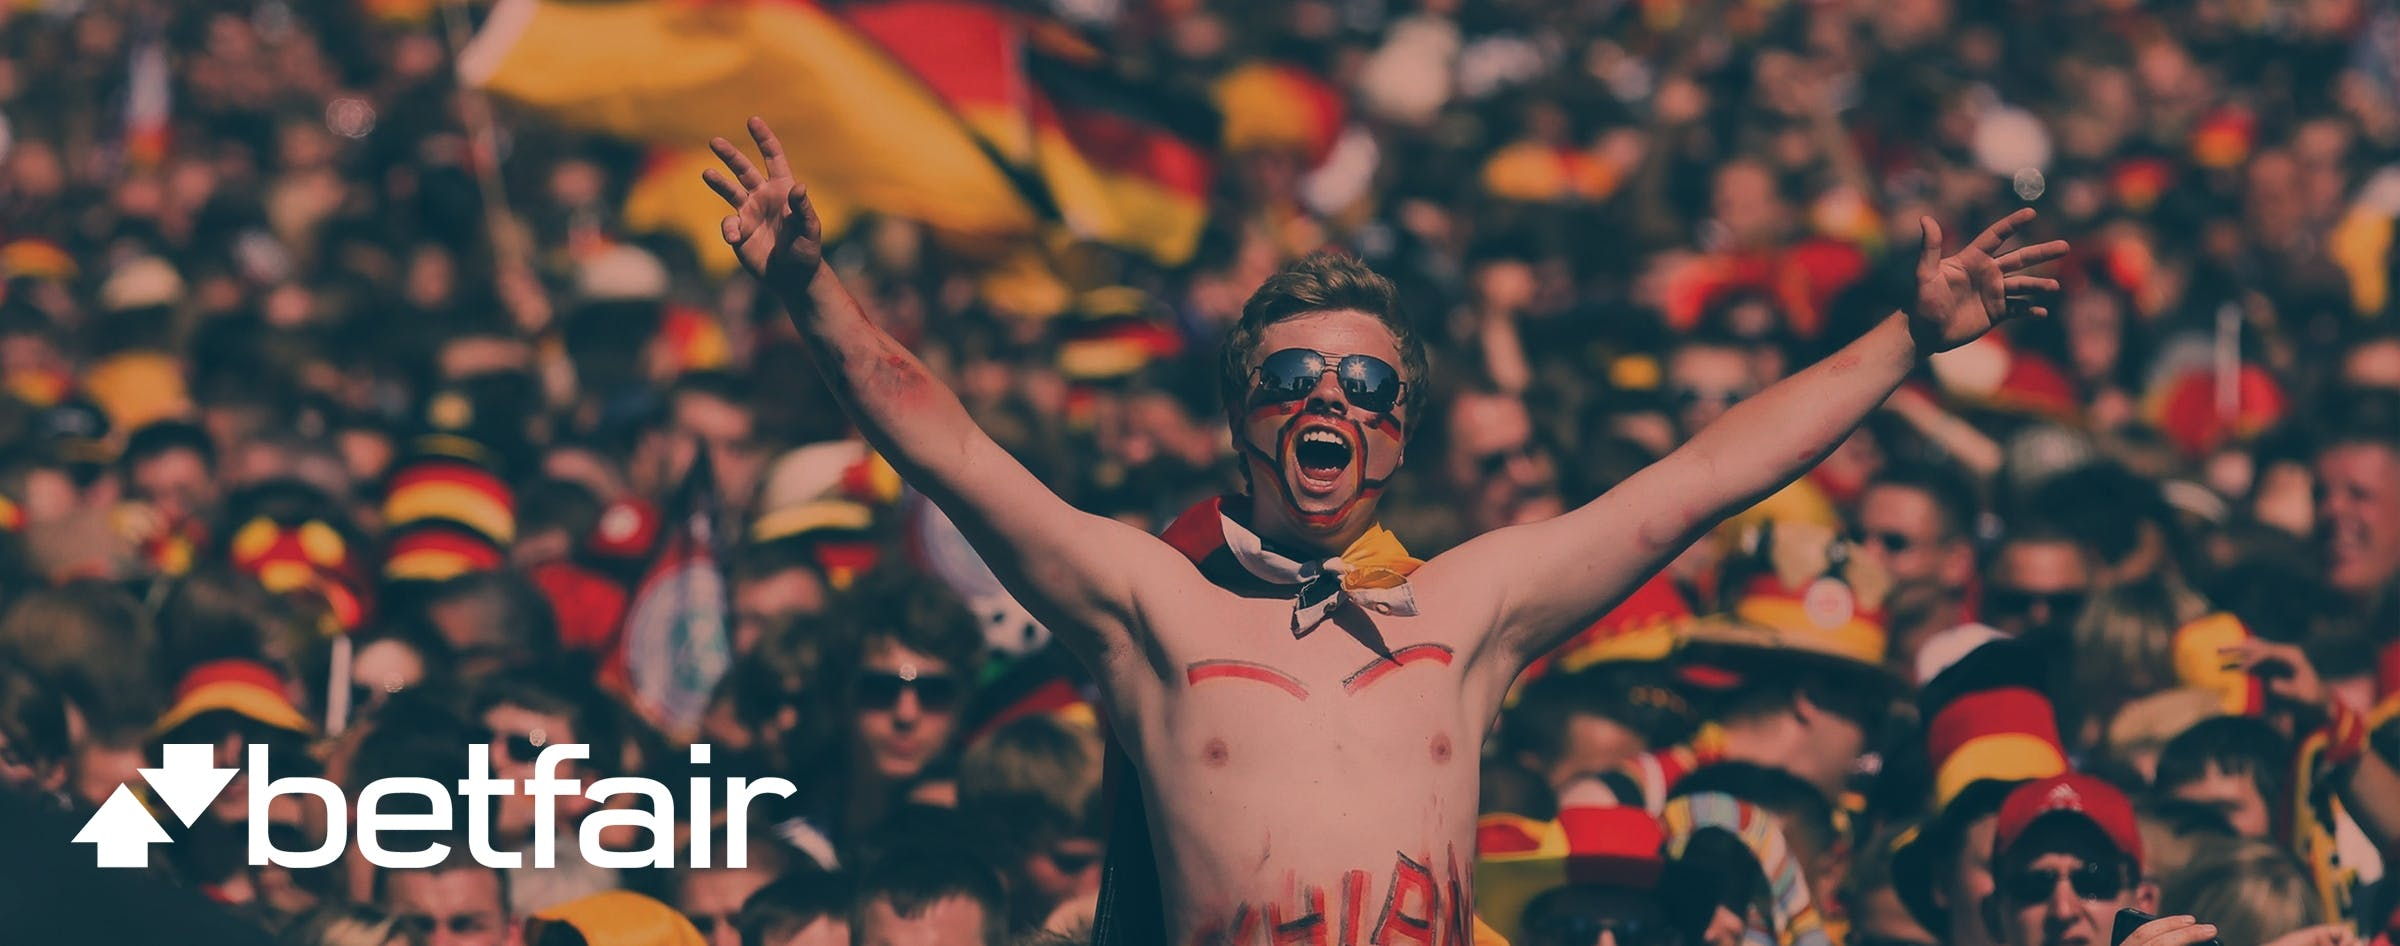 German Fans Betfair Cropped